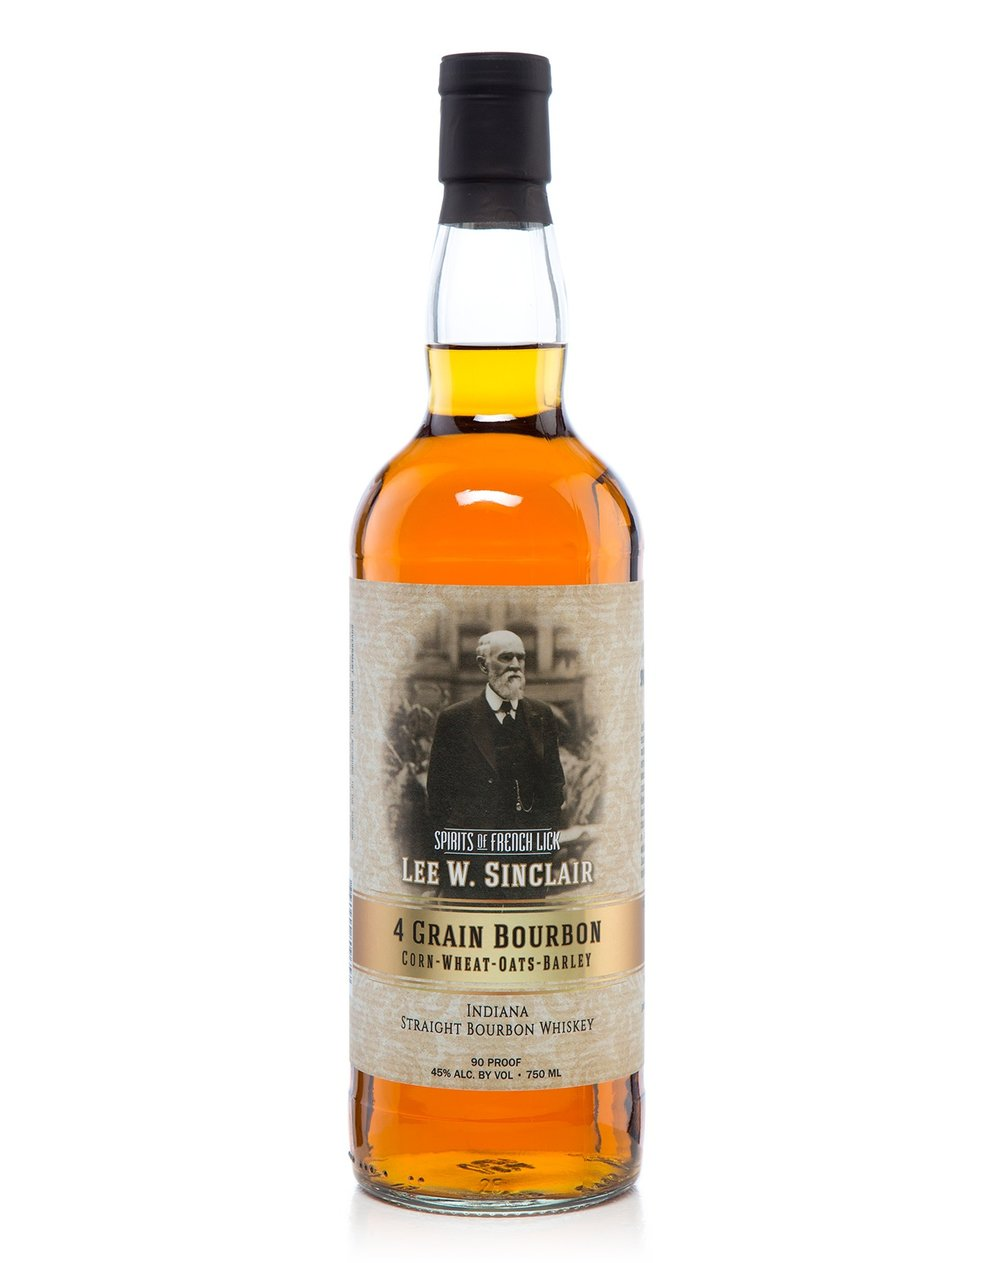 Spirits Of French Lick Lee Sinclair 4-Grain Bourbon